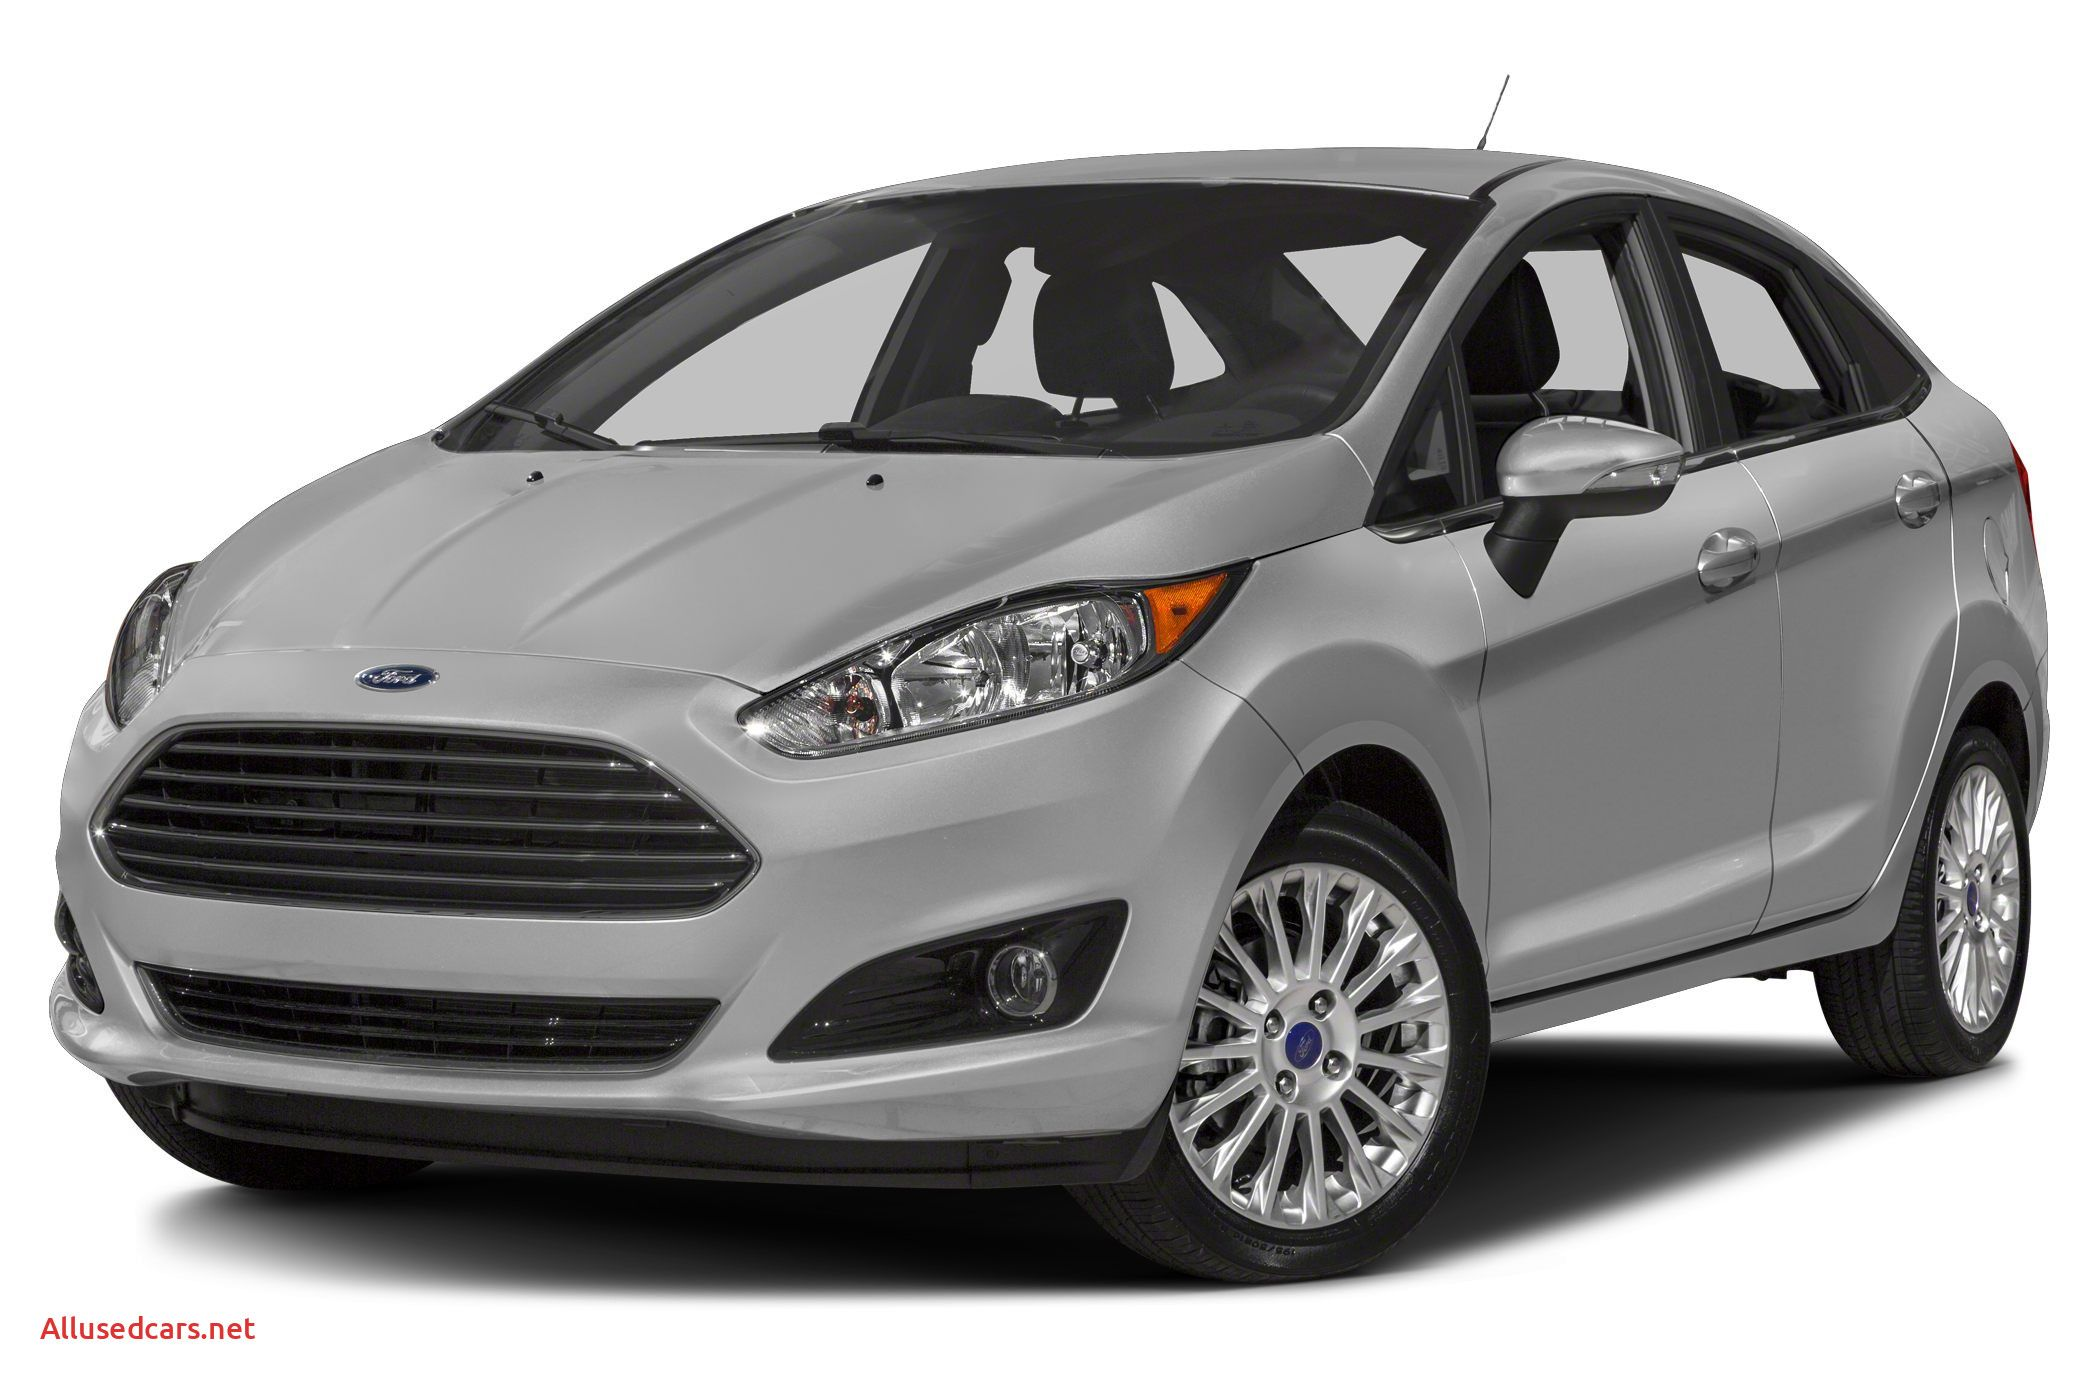 2017 Ford Fiesta Titanium 4dr Sedan Pricing And Options Ford Fiesta New Car Smell Ford